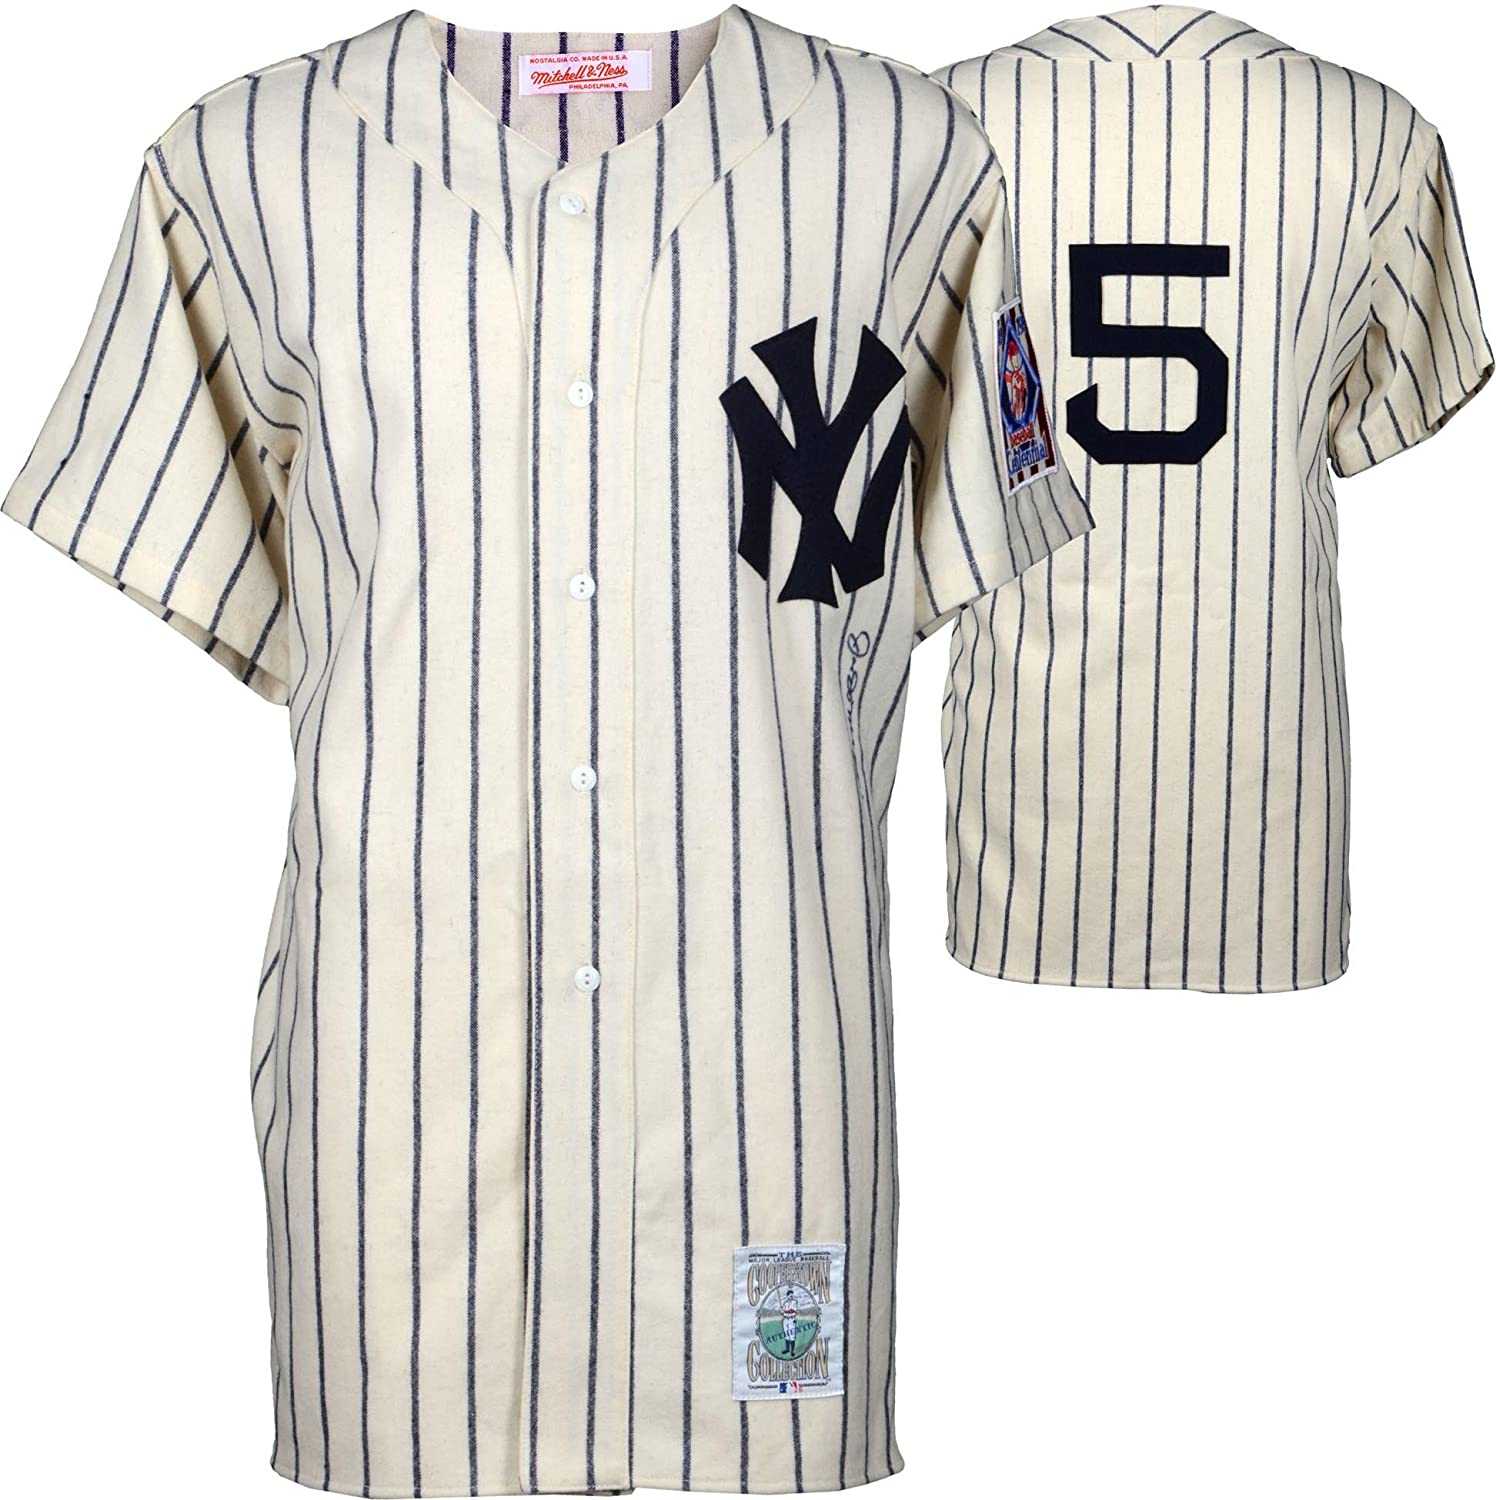 low priced 8860a c8e88 Joe DiMaggio New York Yankees Autographed Mitchell & Ness ...